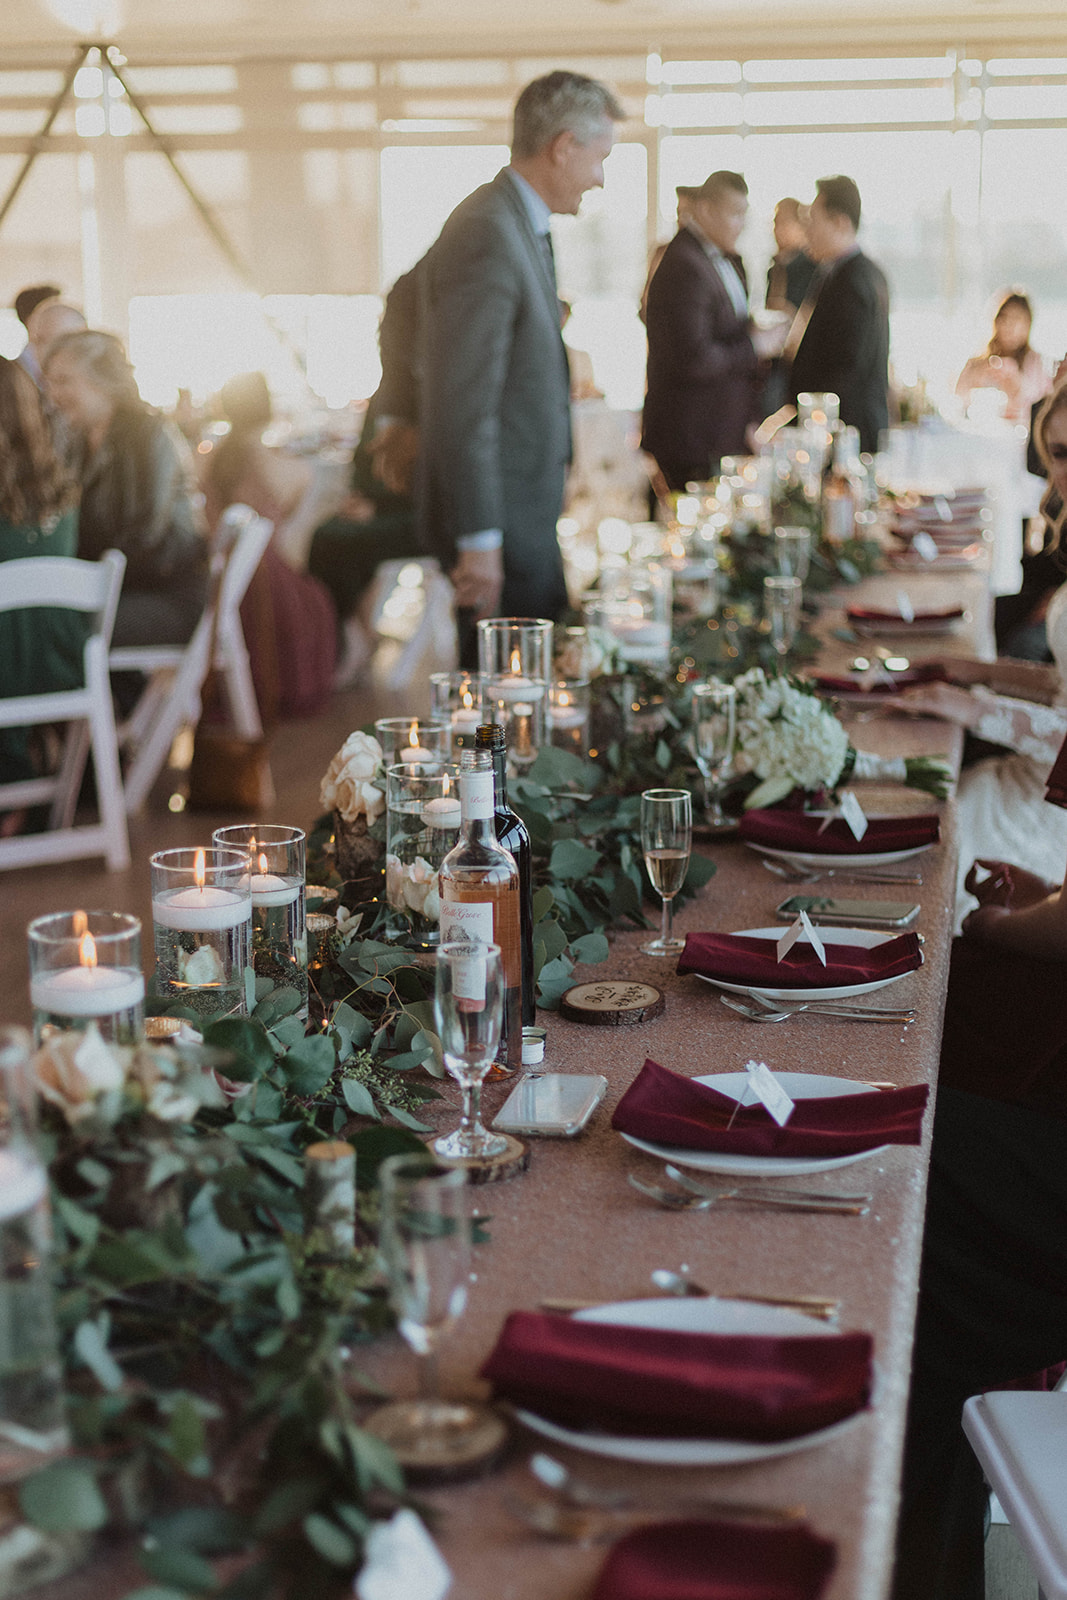 UBC Boathouse Wedding head table decor floating candles, eucalyptous and log rounds with blush pink roses